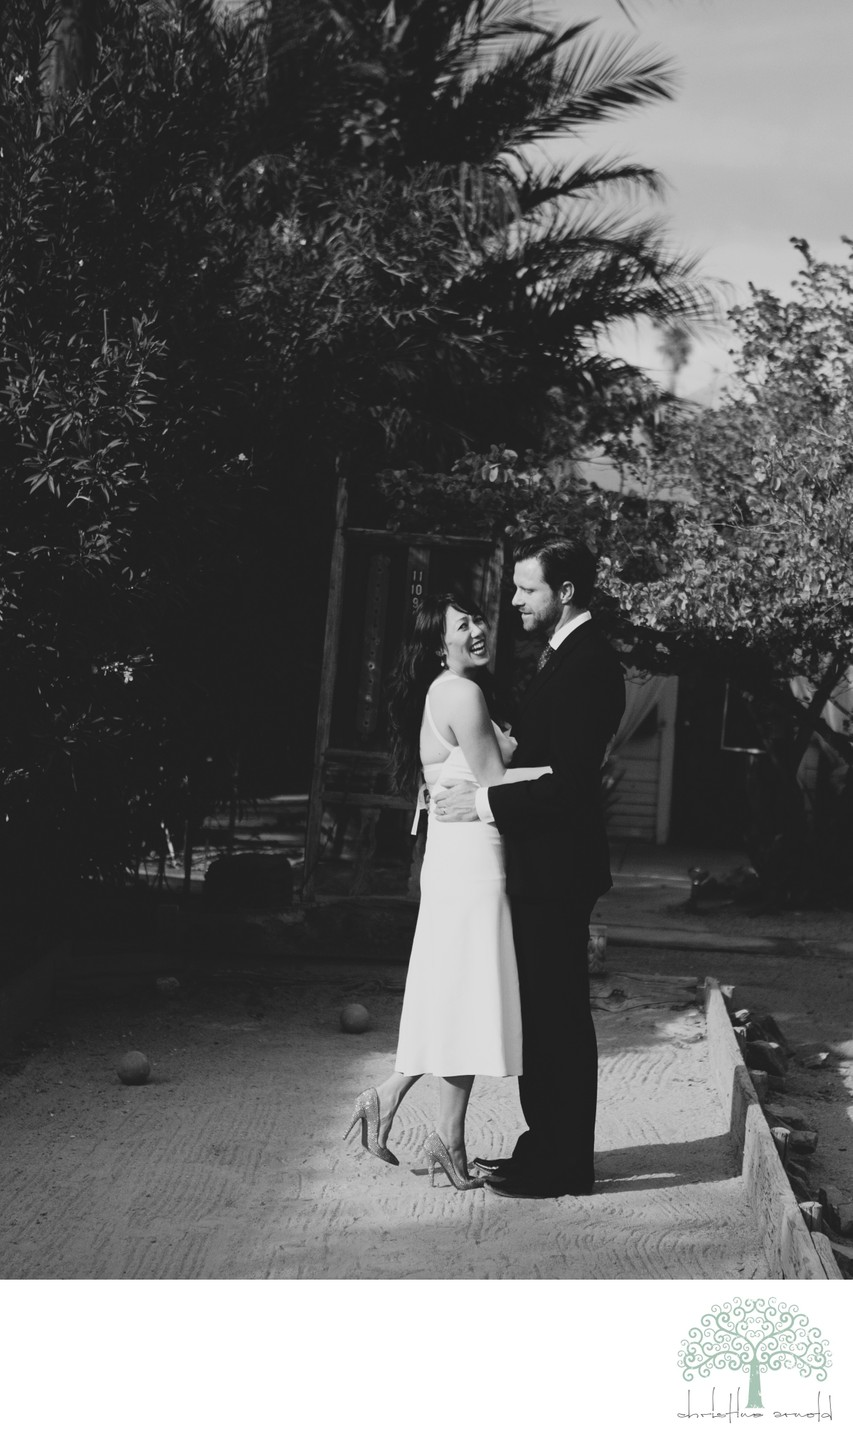 Black and White Wedding Photography in Palm Springs